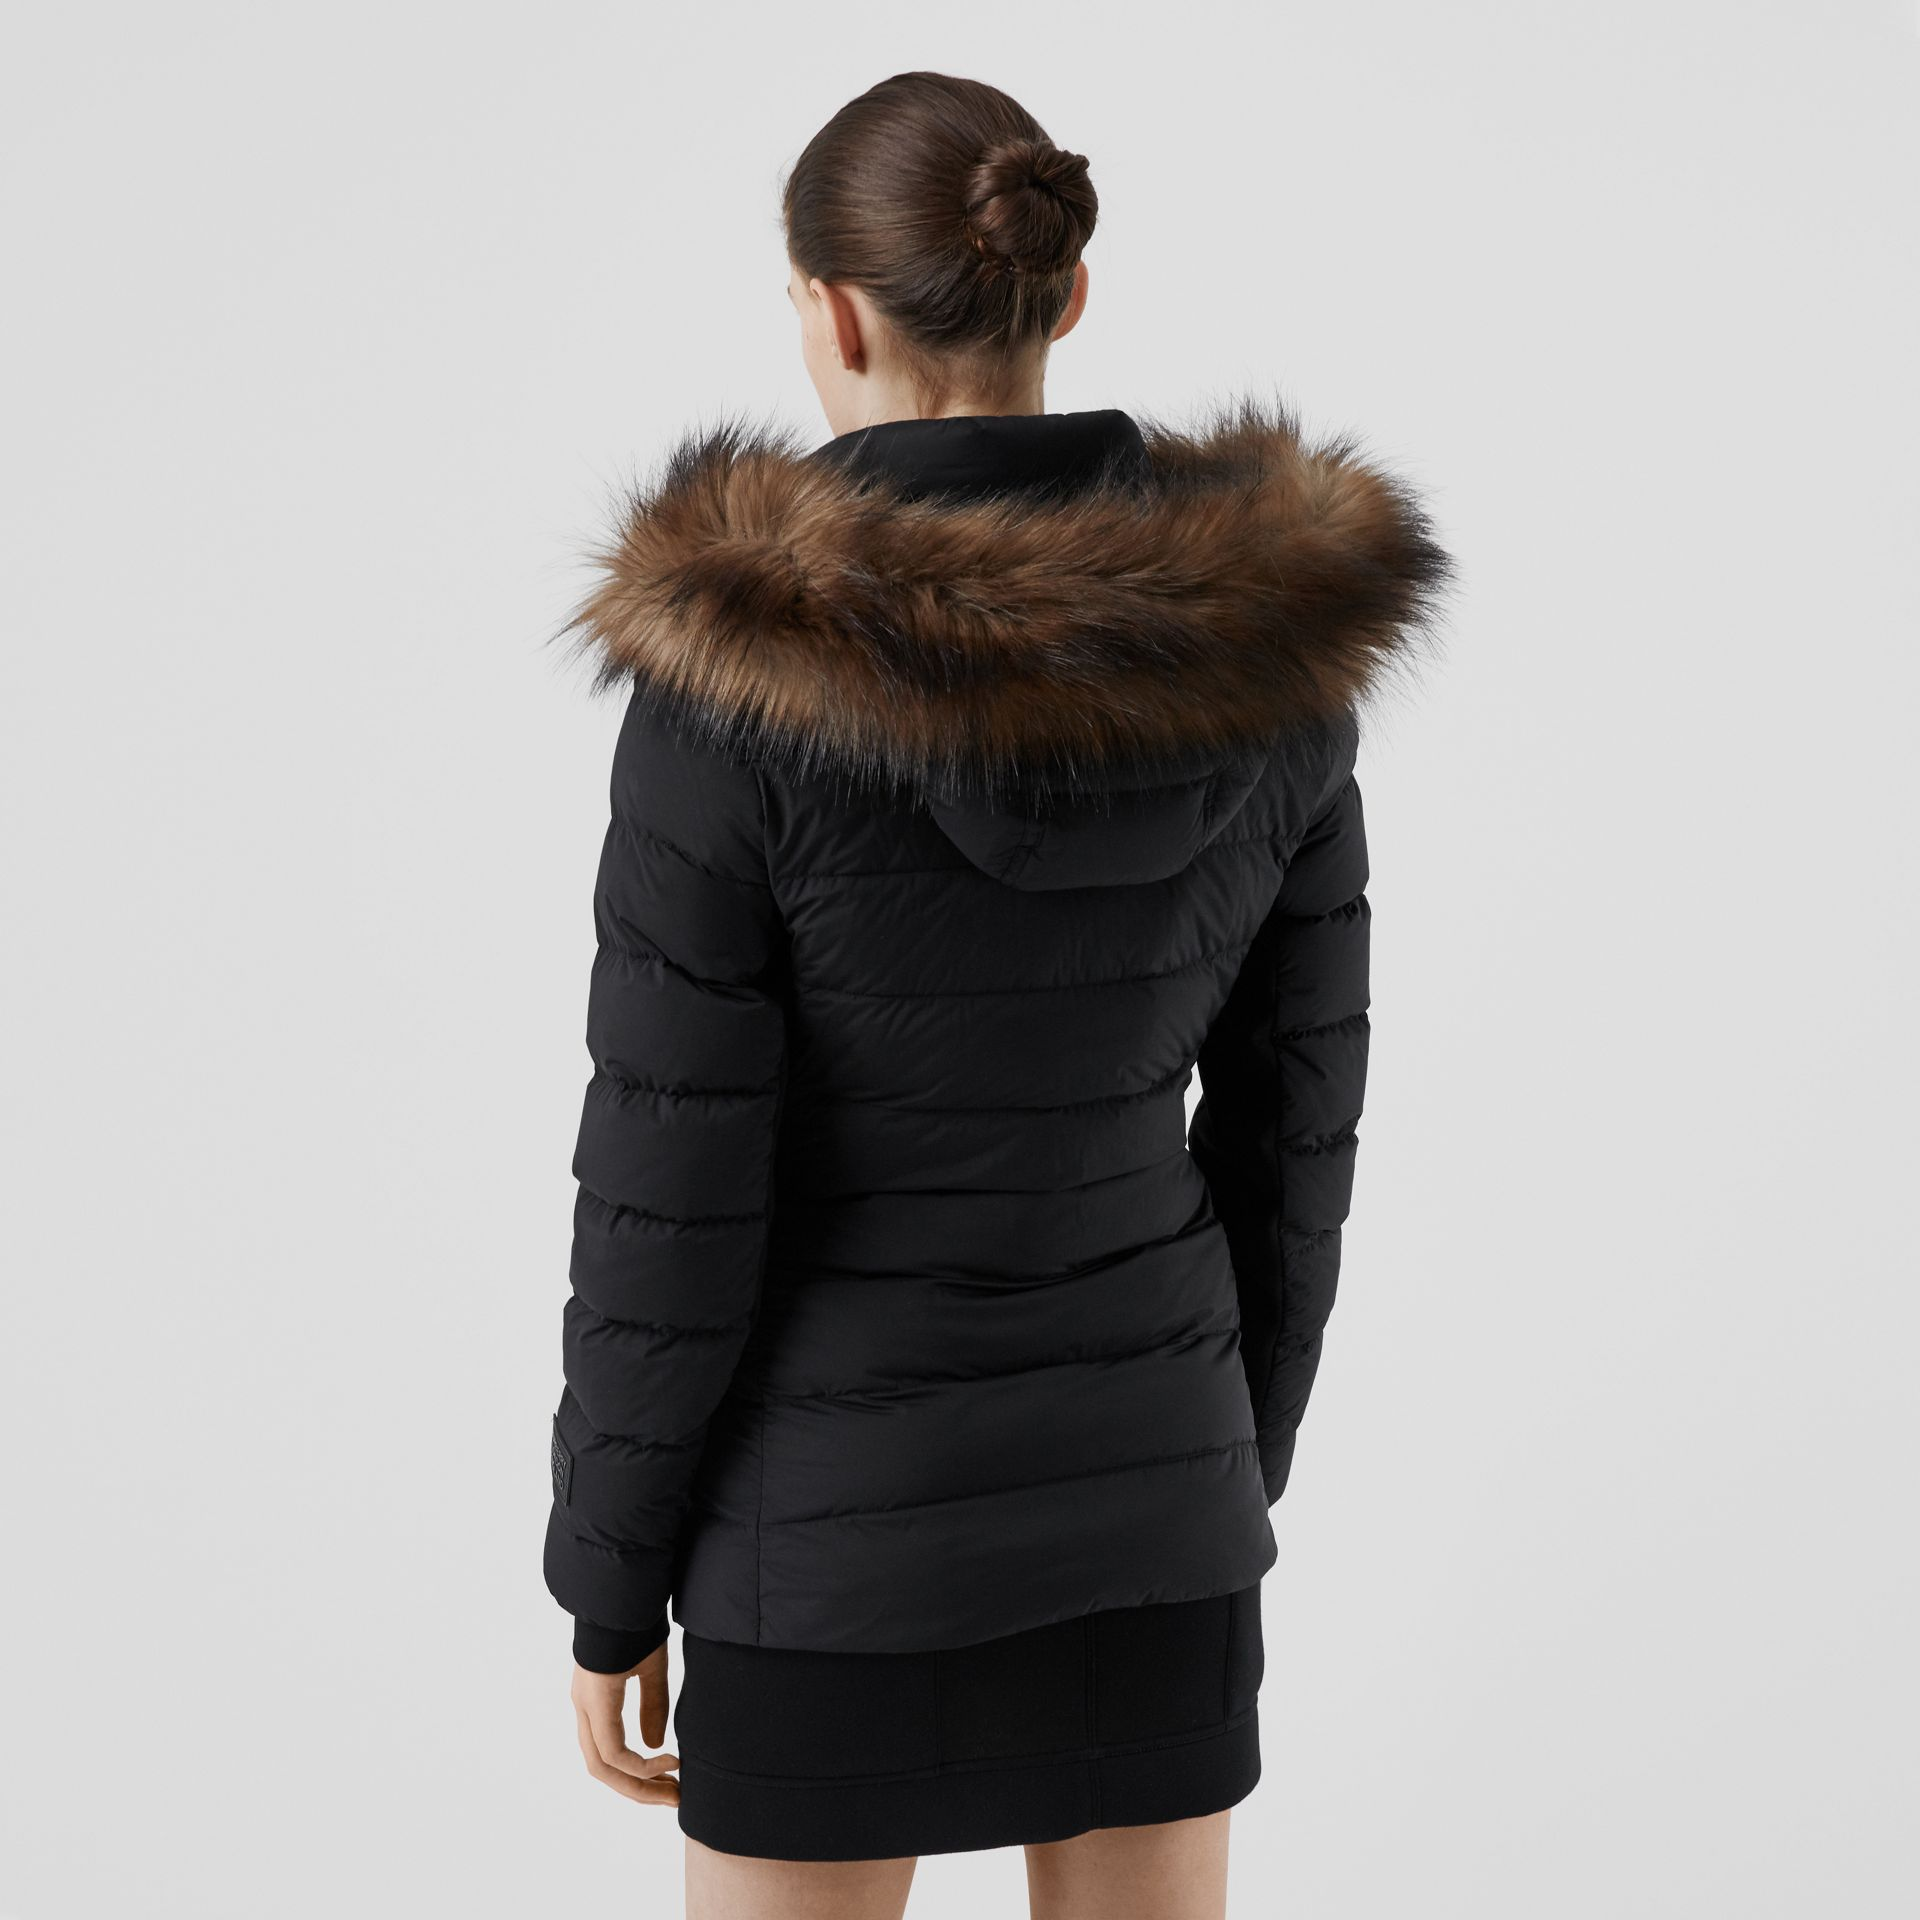 Detachable Faux Fur Trim Hooded Puffer Jacket in Black - Women | Burberry - gallery image 2